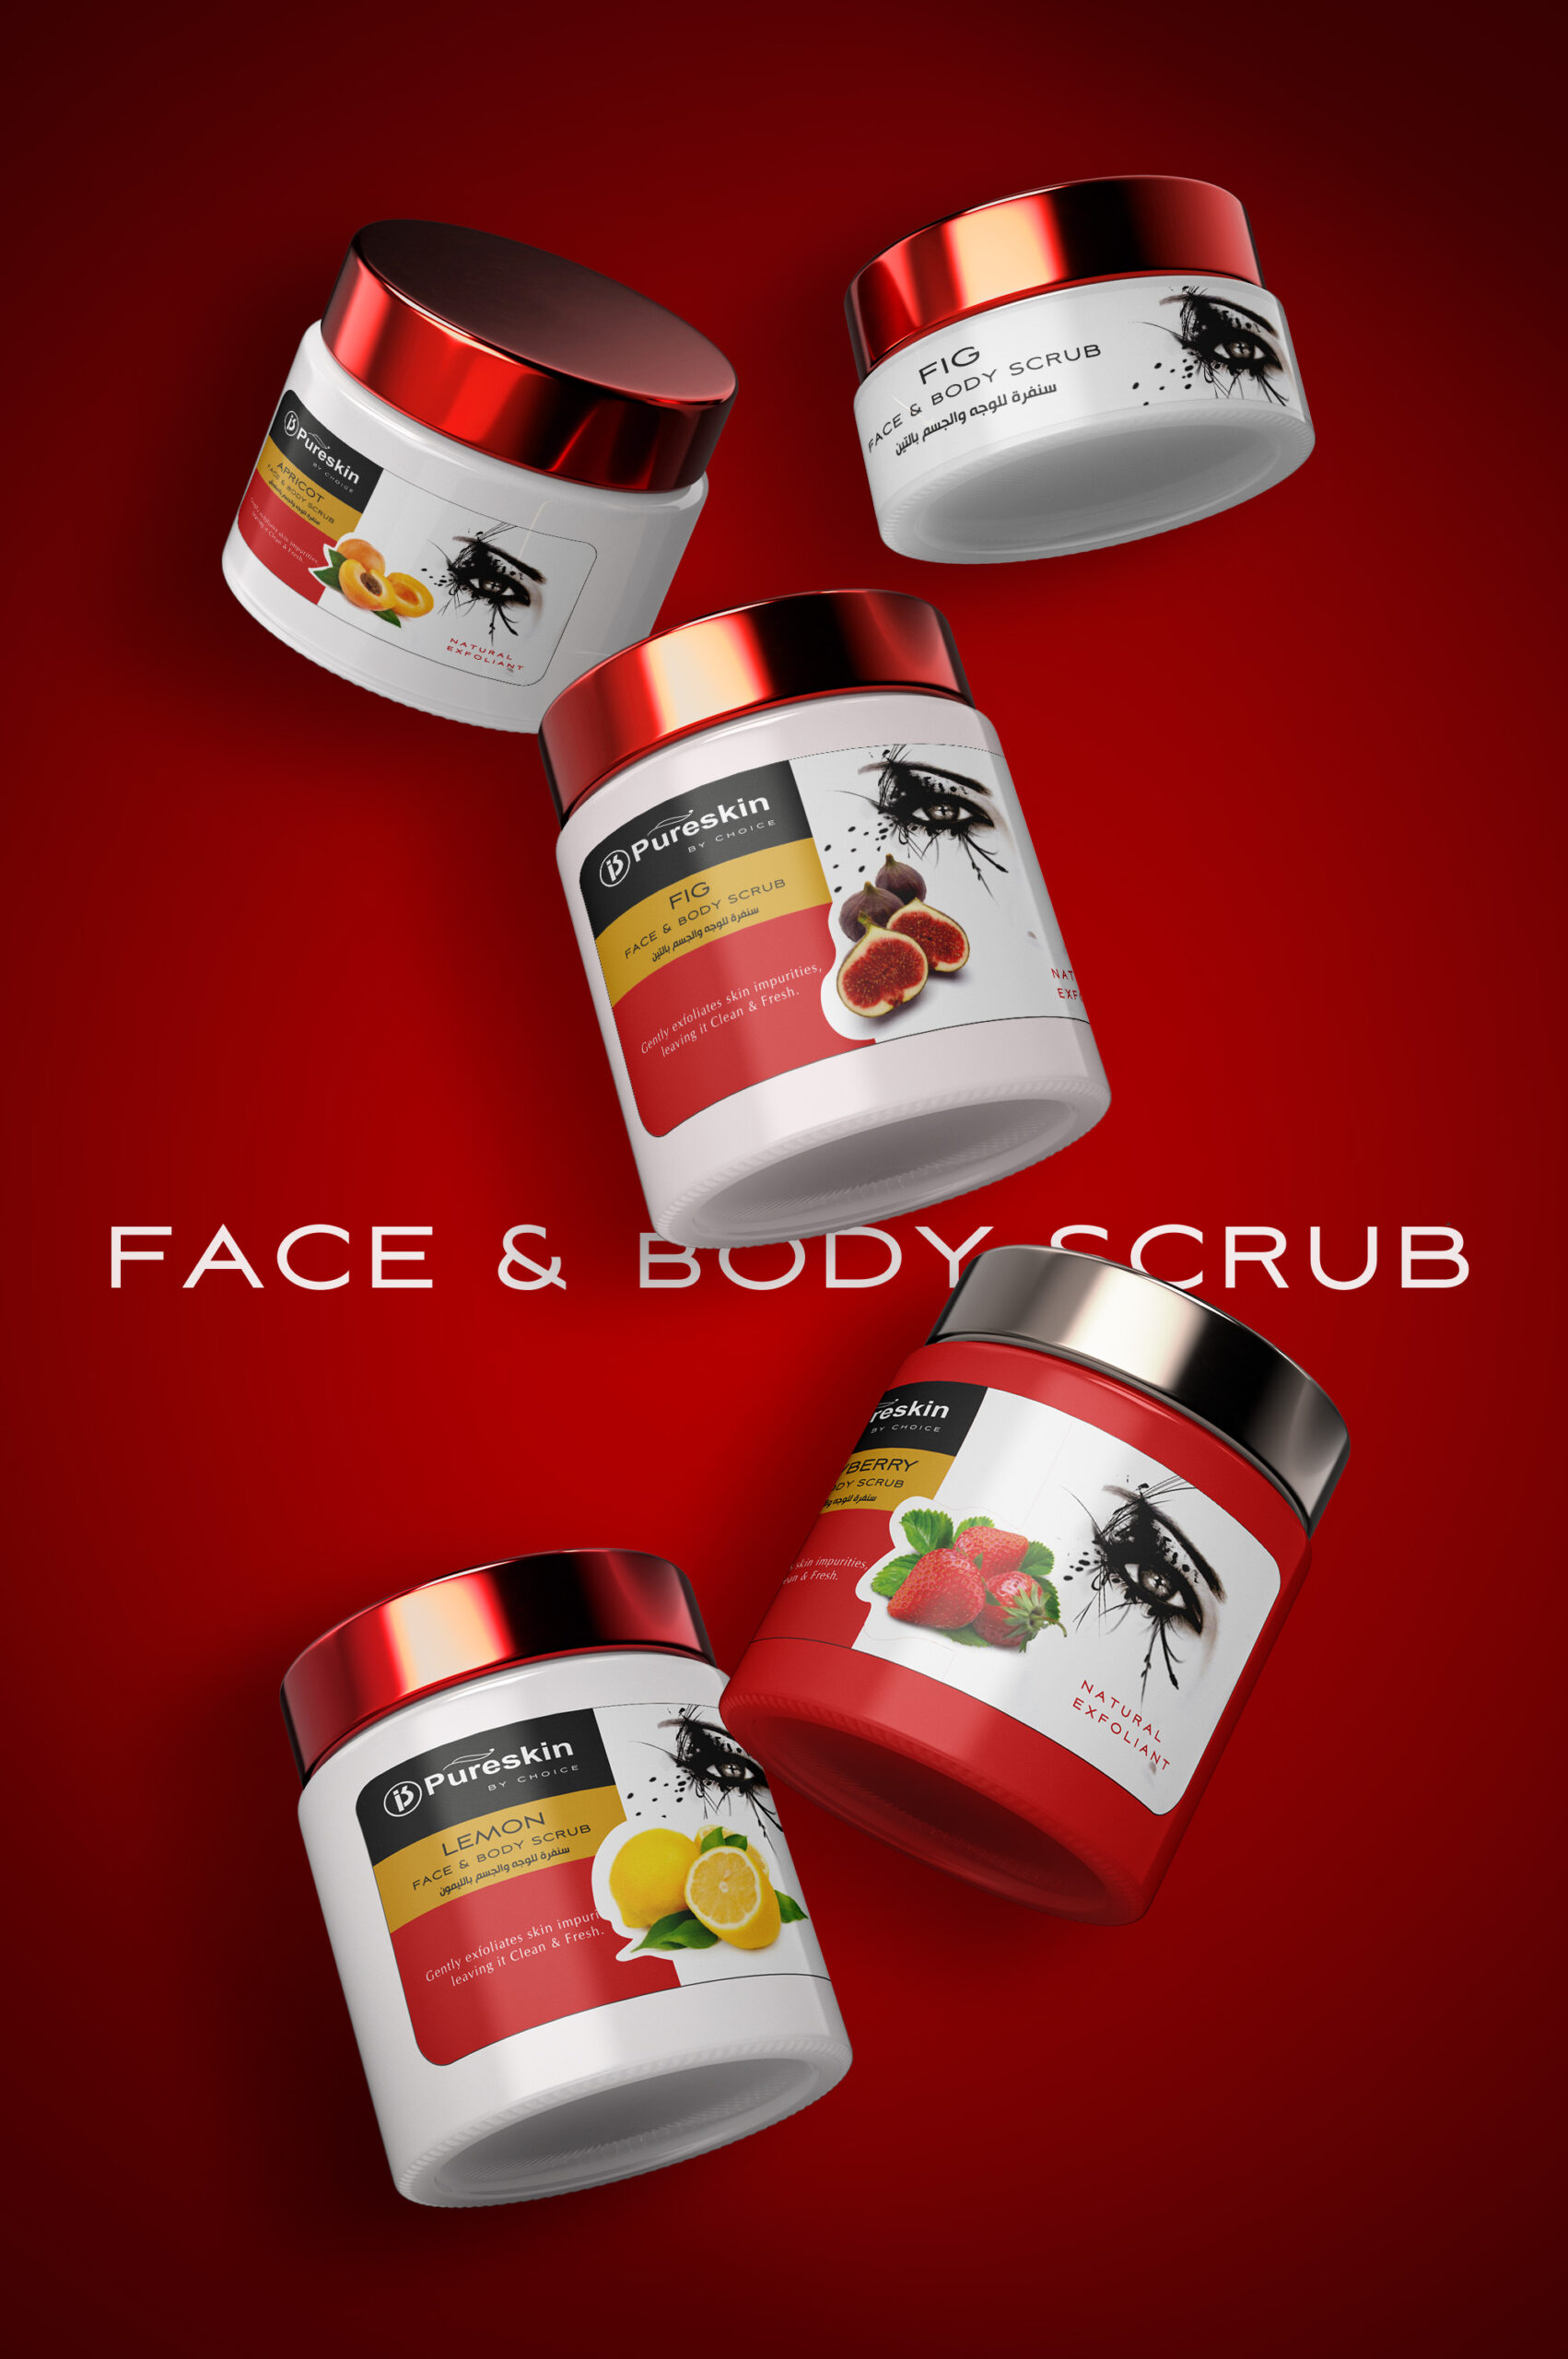 Packaging design for face and body scrub product.